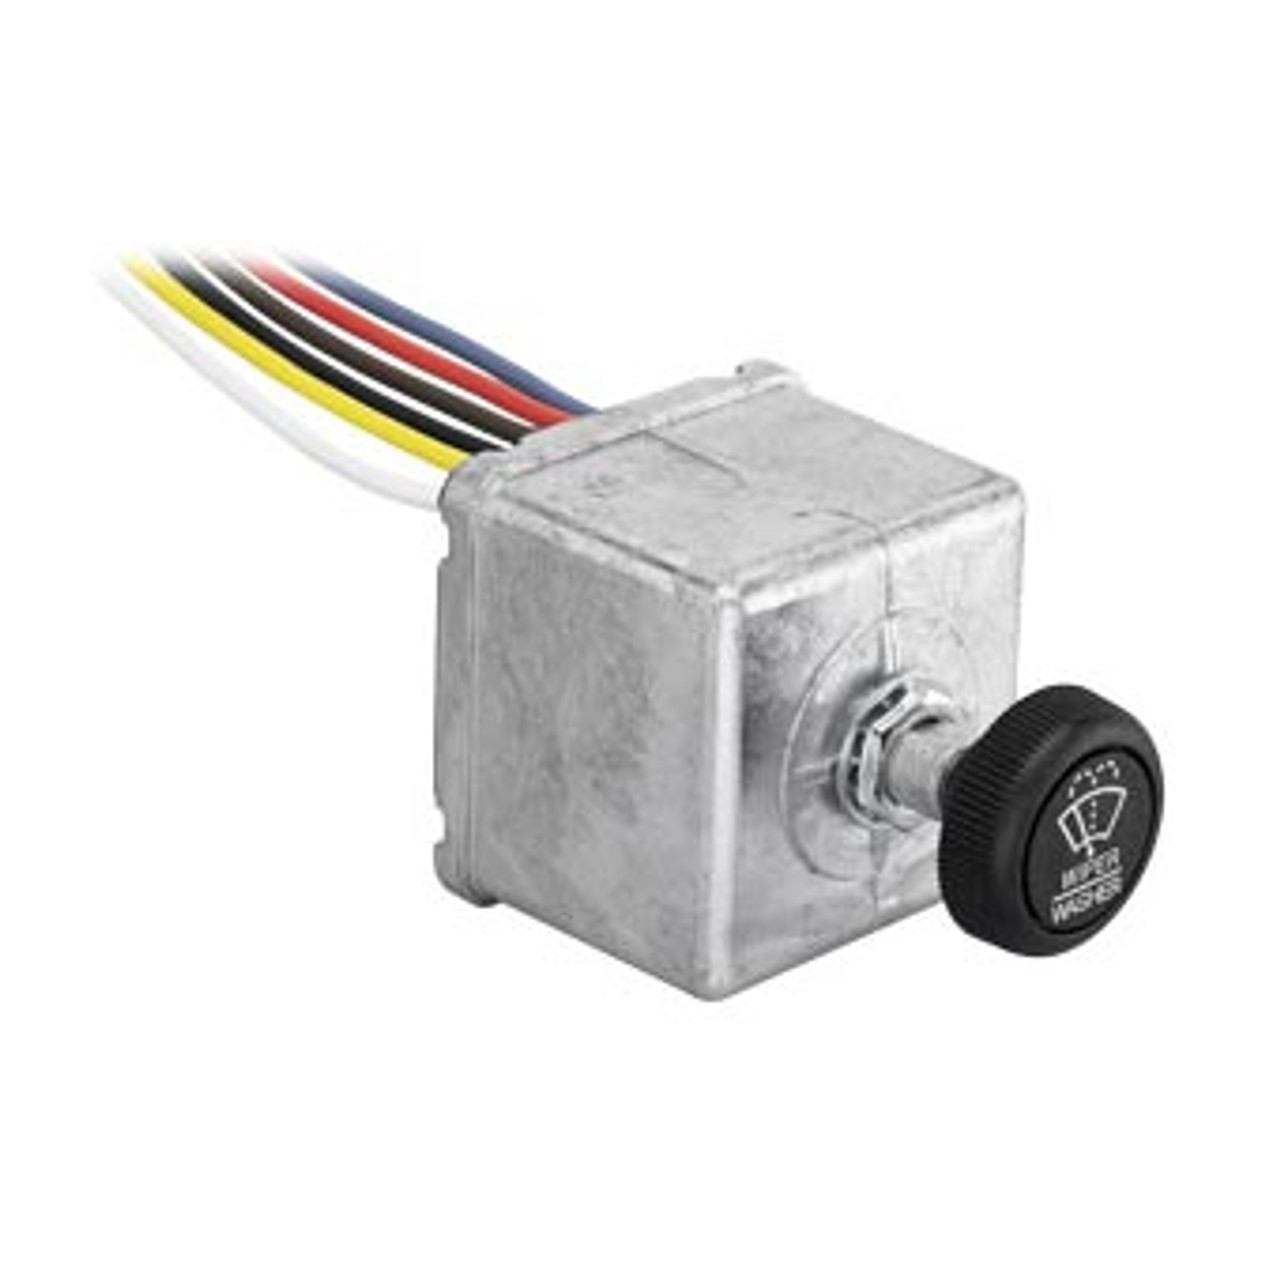 ELECTRONIC WIPER SWITCH 12V 1 MOTOR